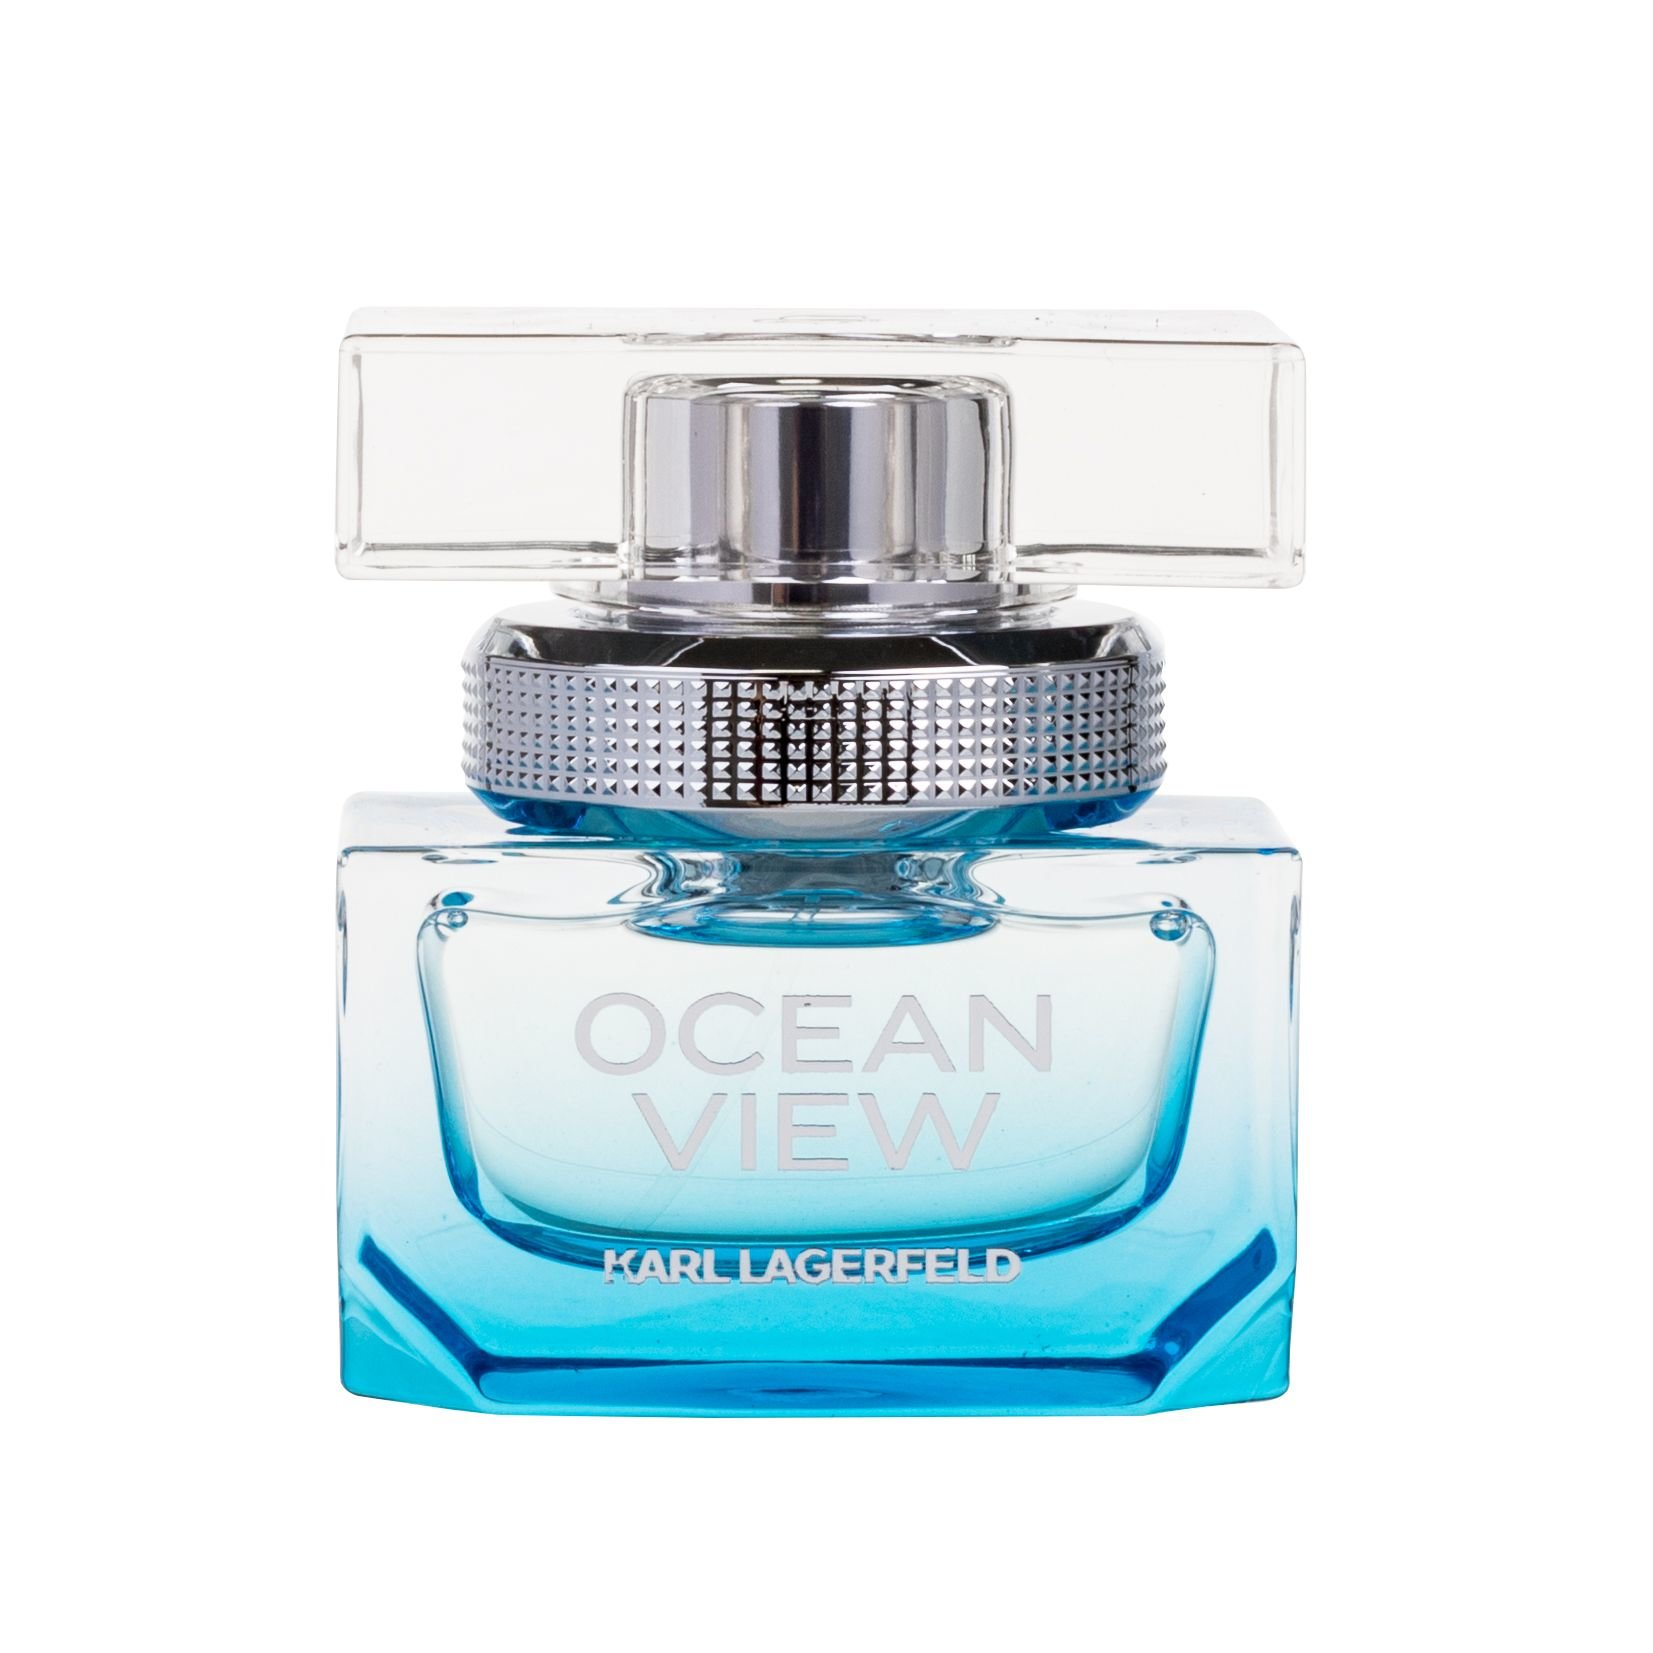 Karl Lagerfeld Ocean View For Women EDP 25ml